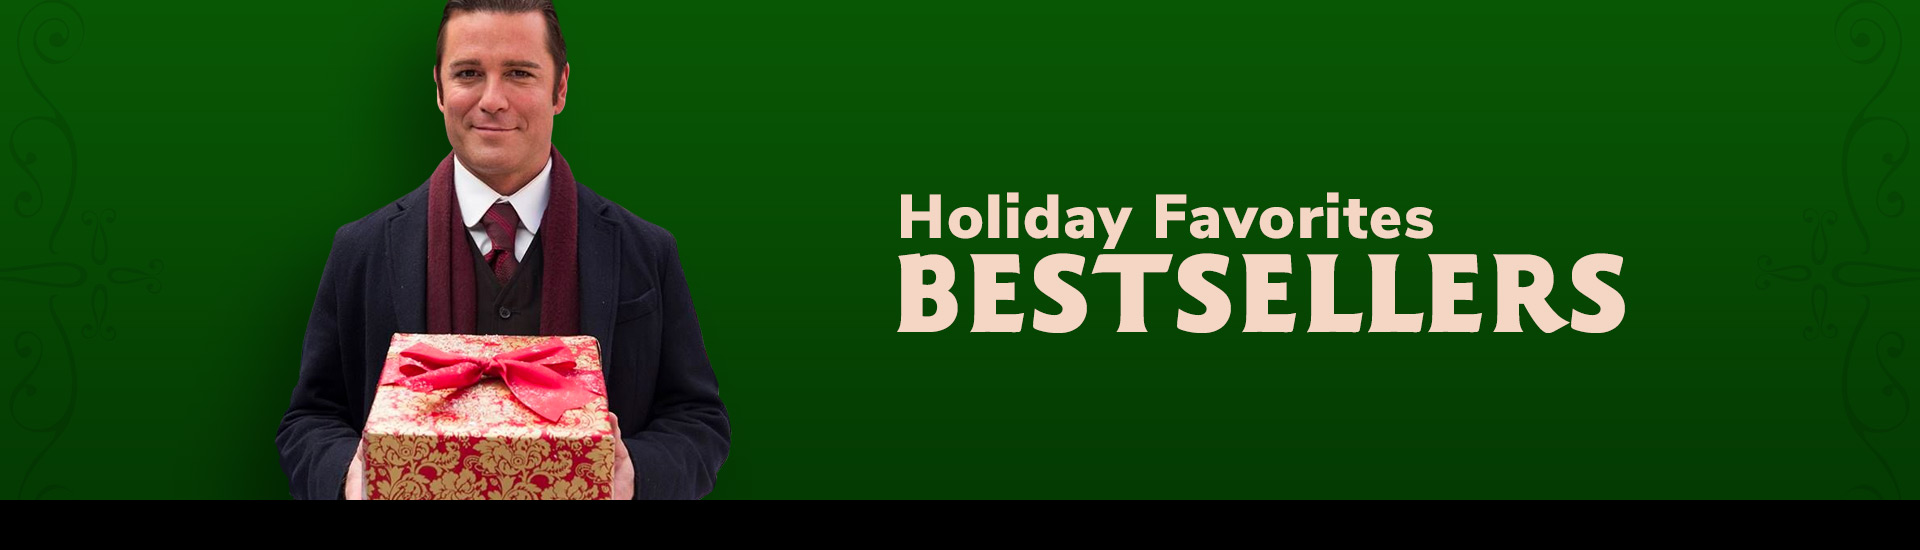 Bestselling Holiday Favorites